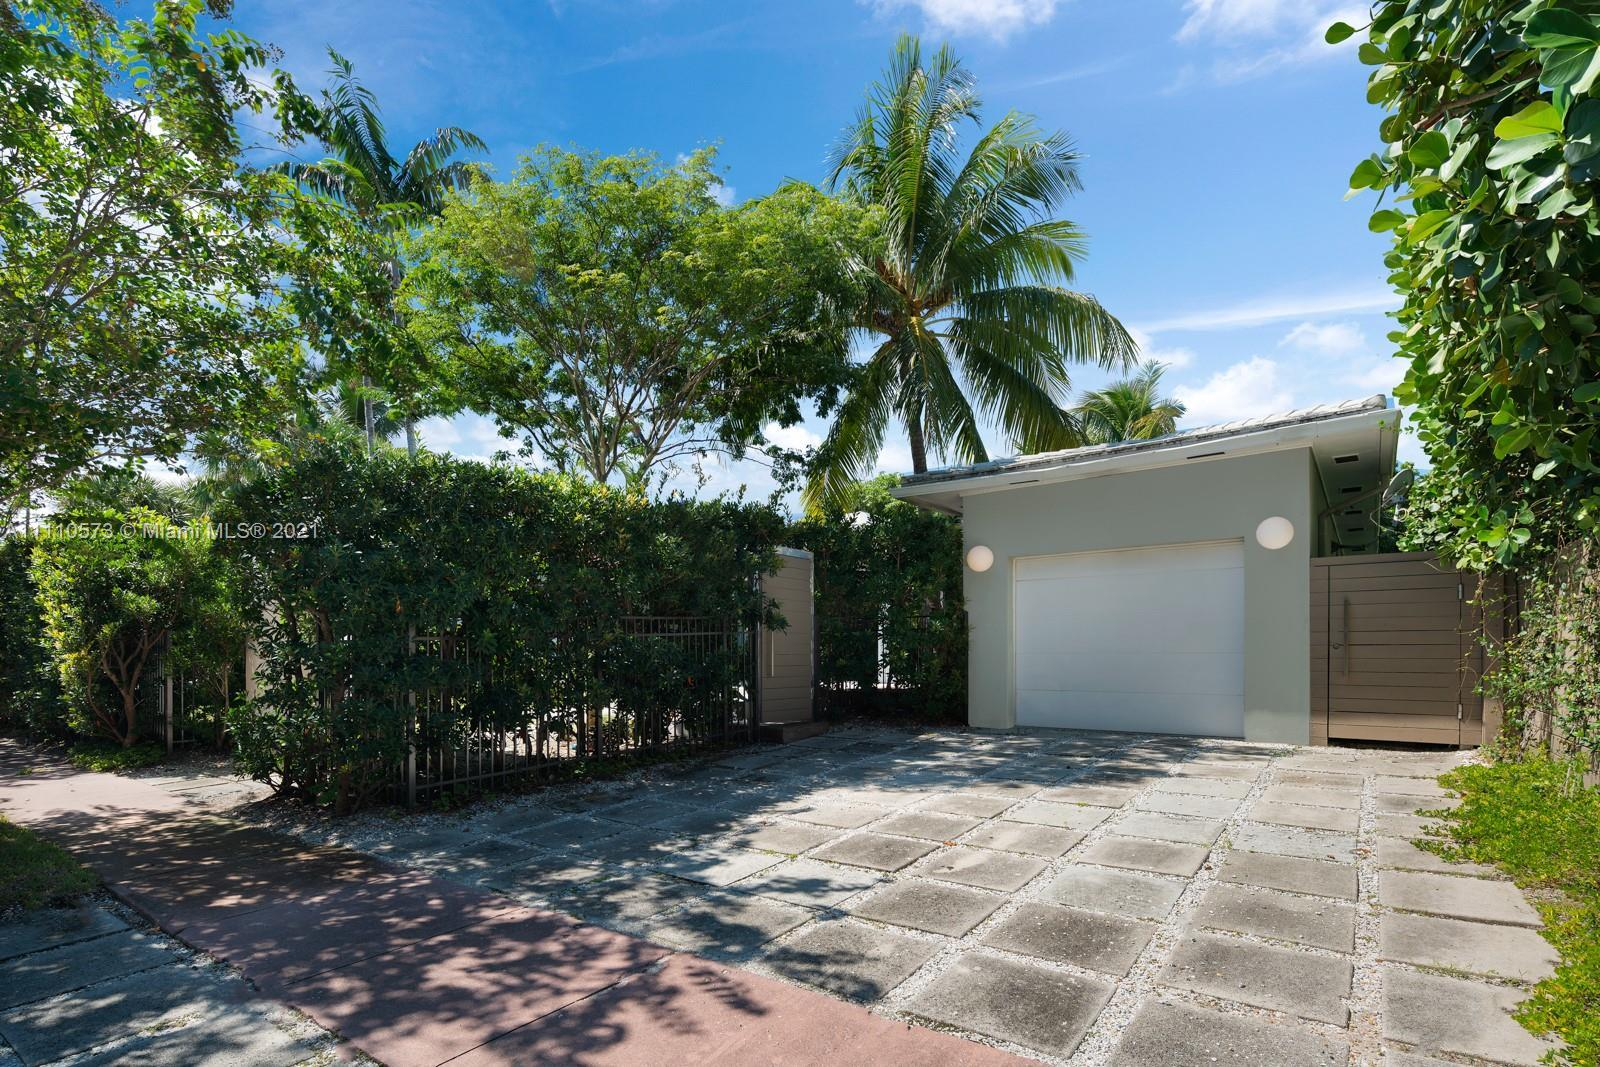 MiMo style 4 bd, 3.5 ba home on Miami Beach's highly-sought Flamingo Drive. The 3,551sf home boasts